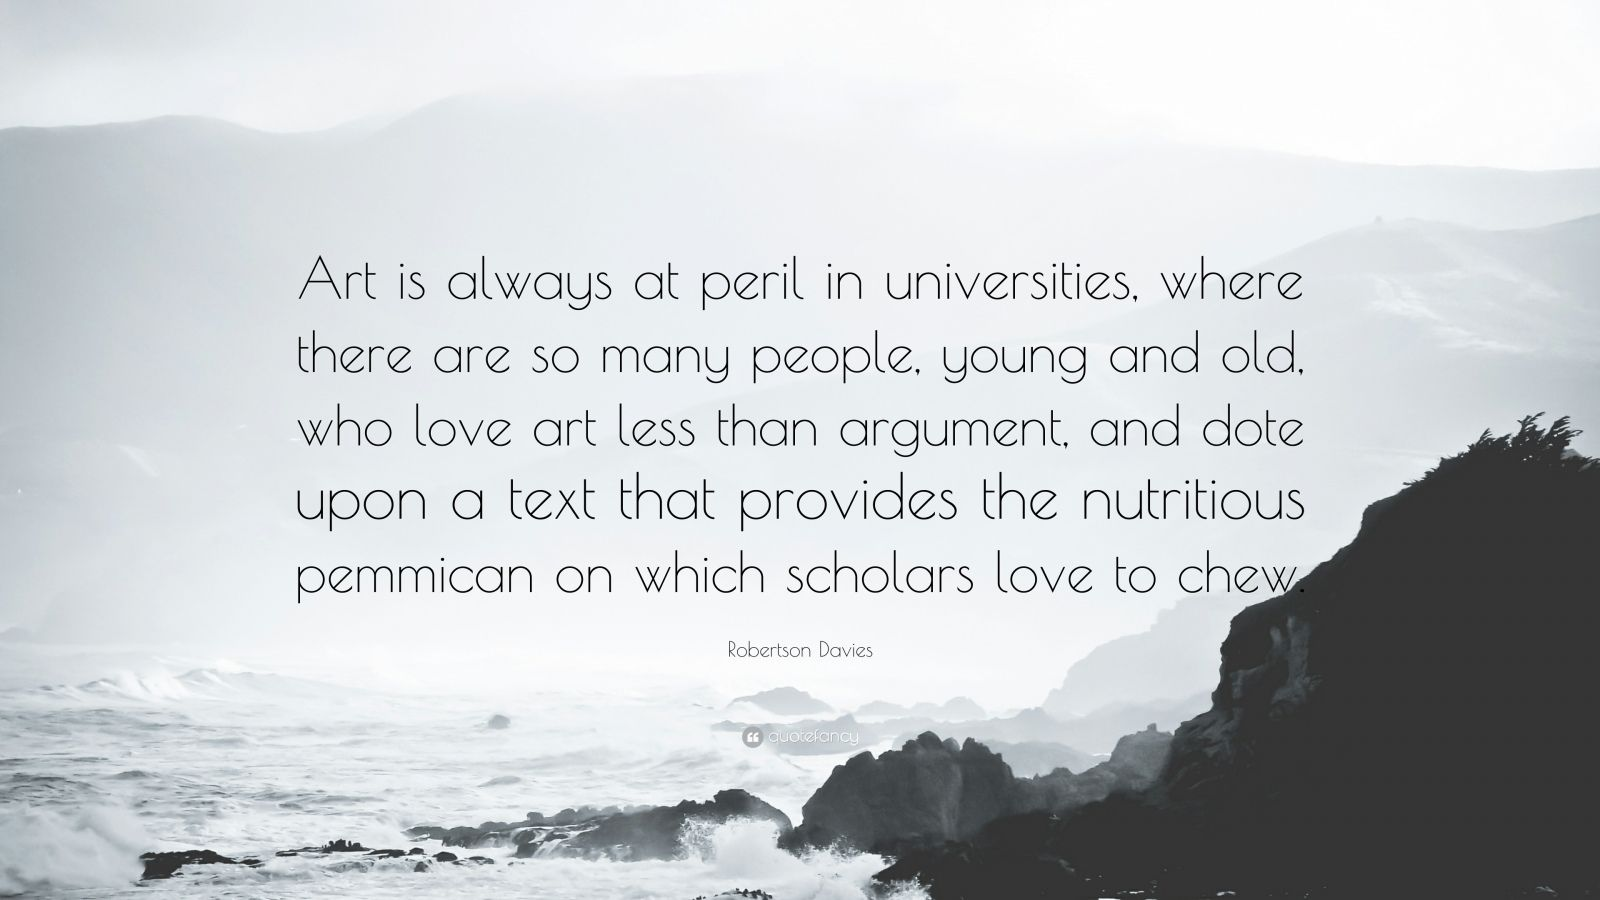 """Robertson Davies Quote: """"Art is always at peril in universities, where there are so many people, young and old, who love art less than argument, and dote upon a text that provides the nutritious pemmican on which scholars love to chew."""""""